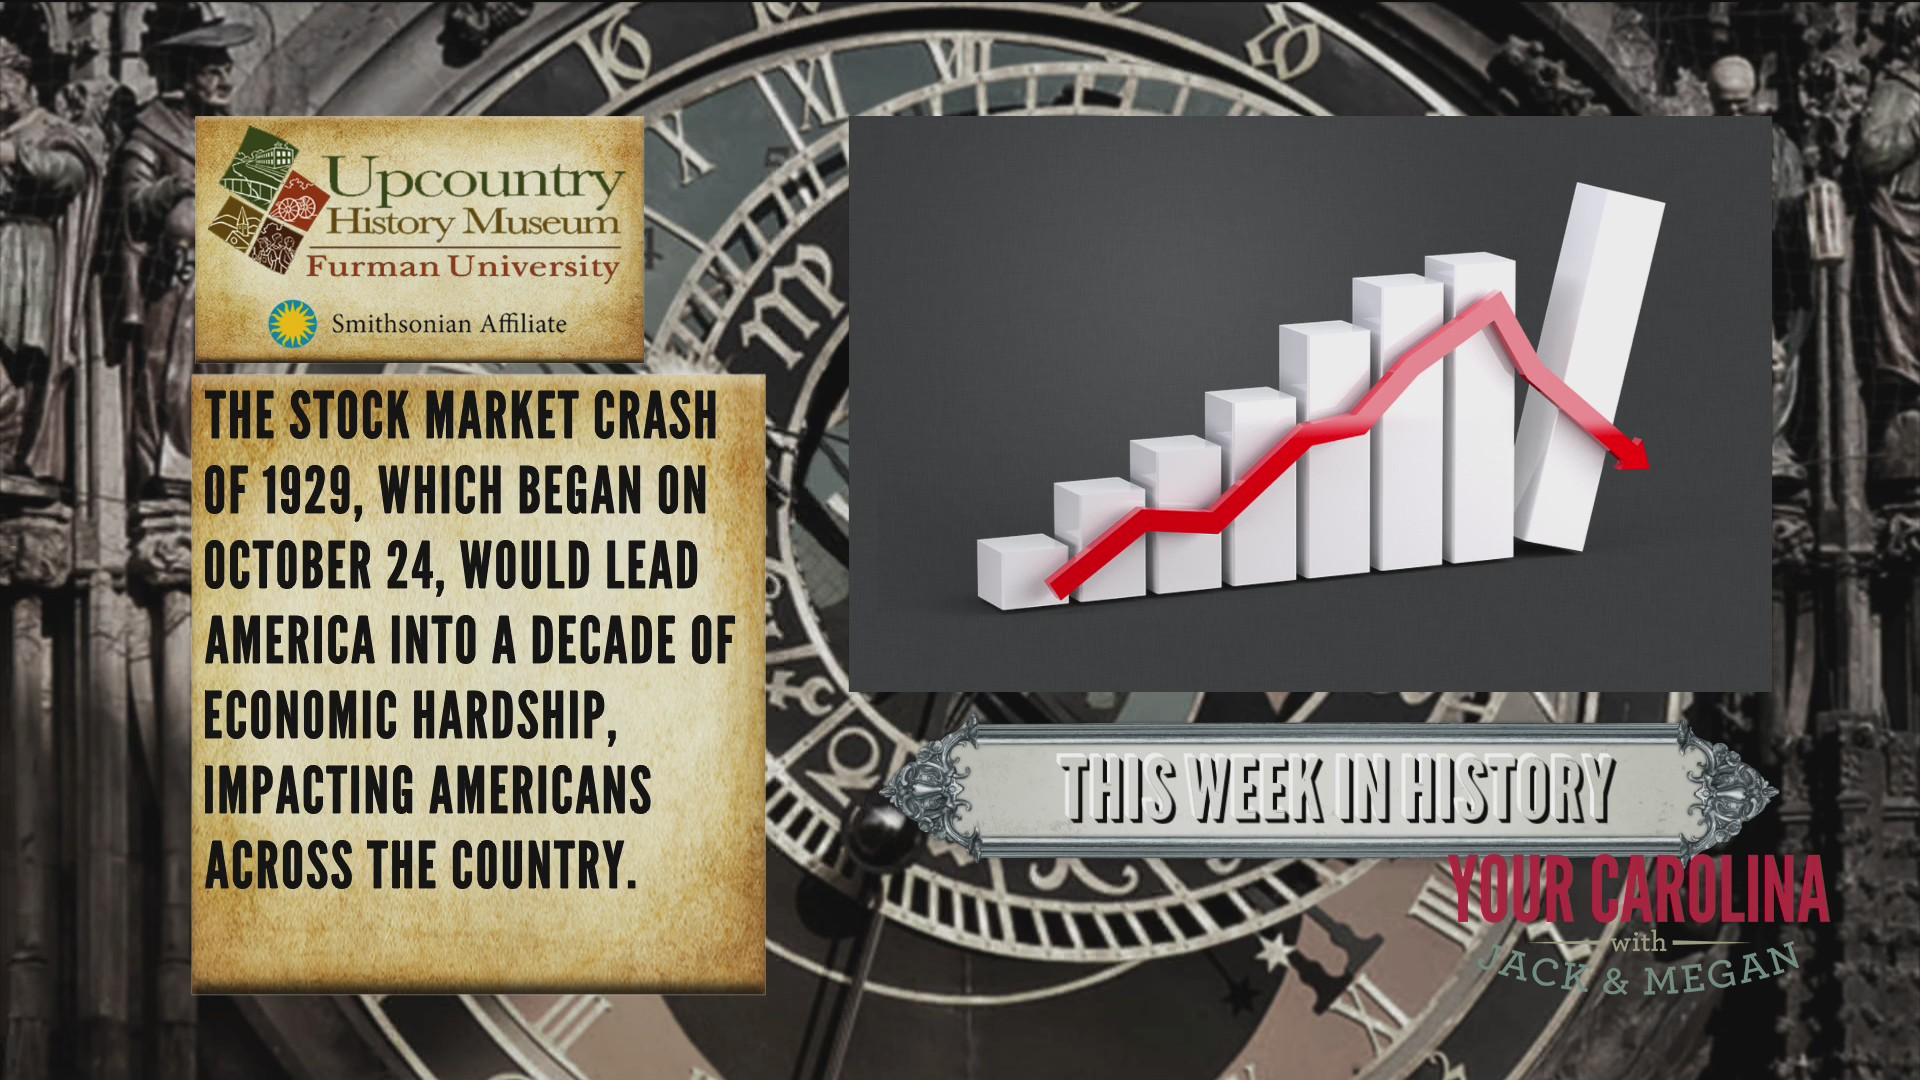 This Week in History - Stock Market Crash of 1929